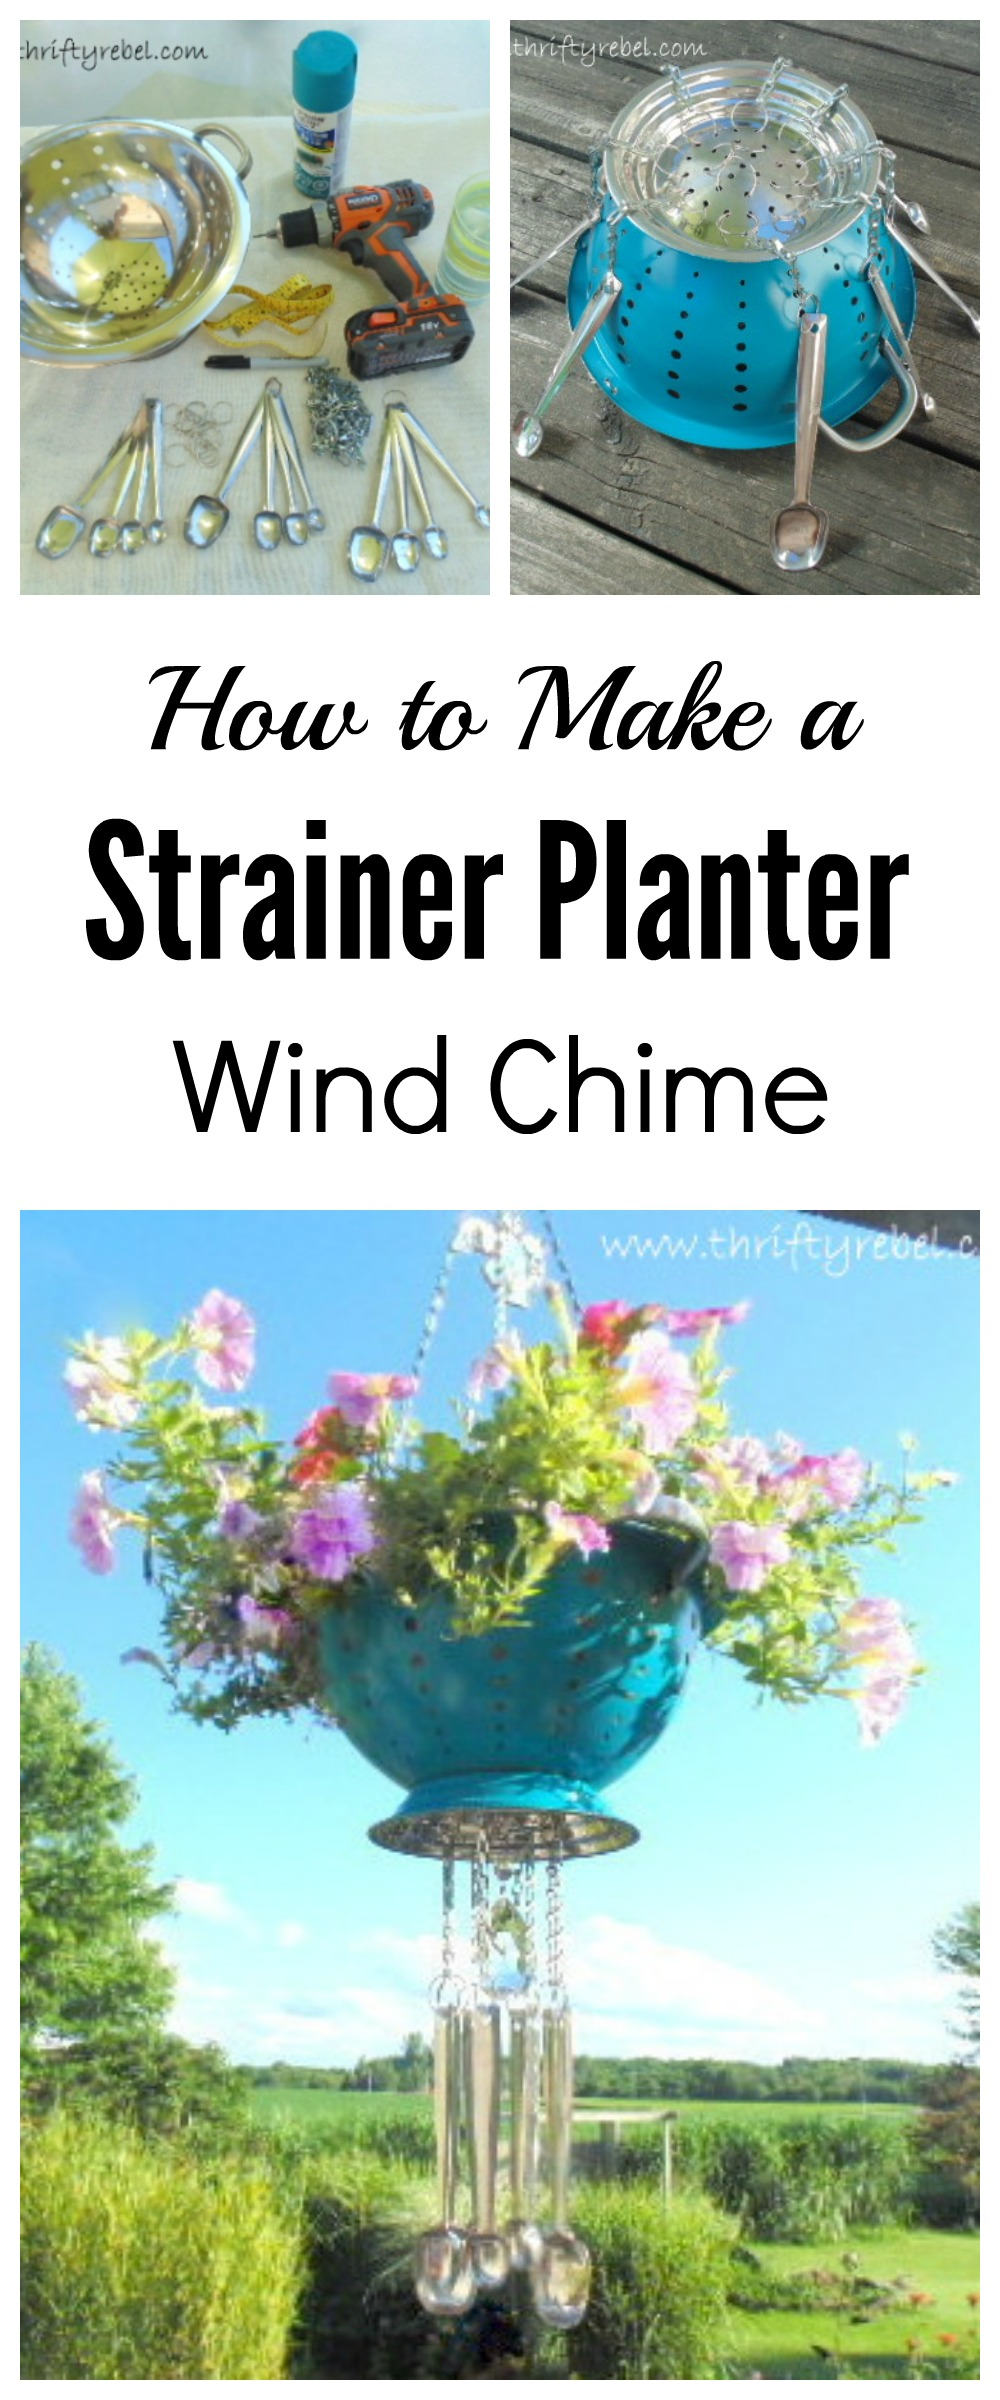 How to maker a strainer planter wind chime